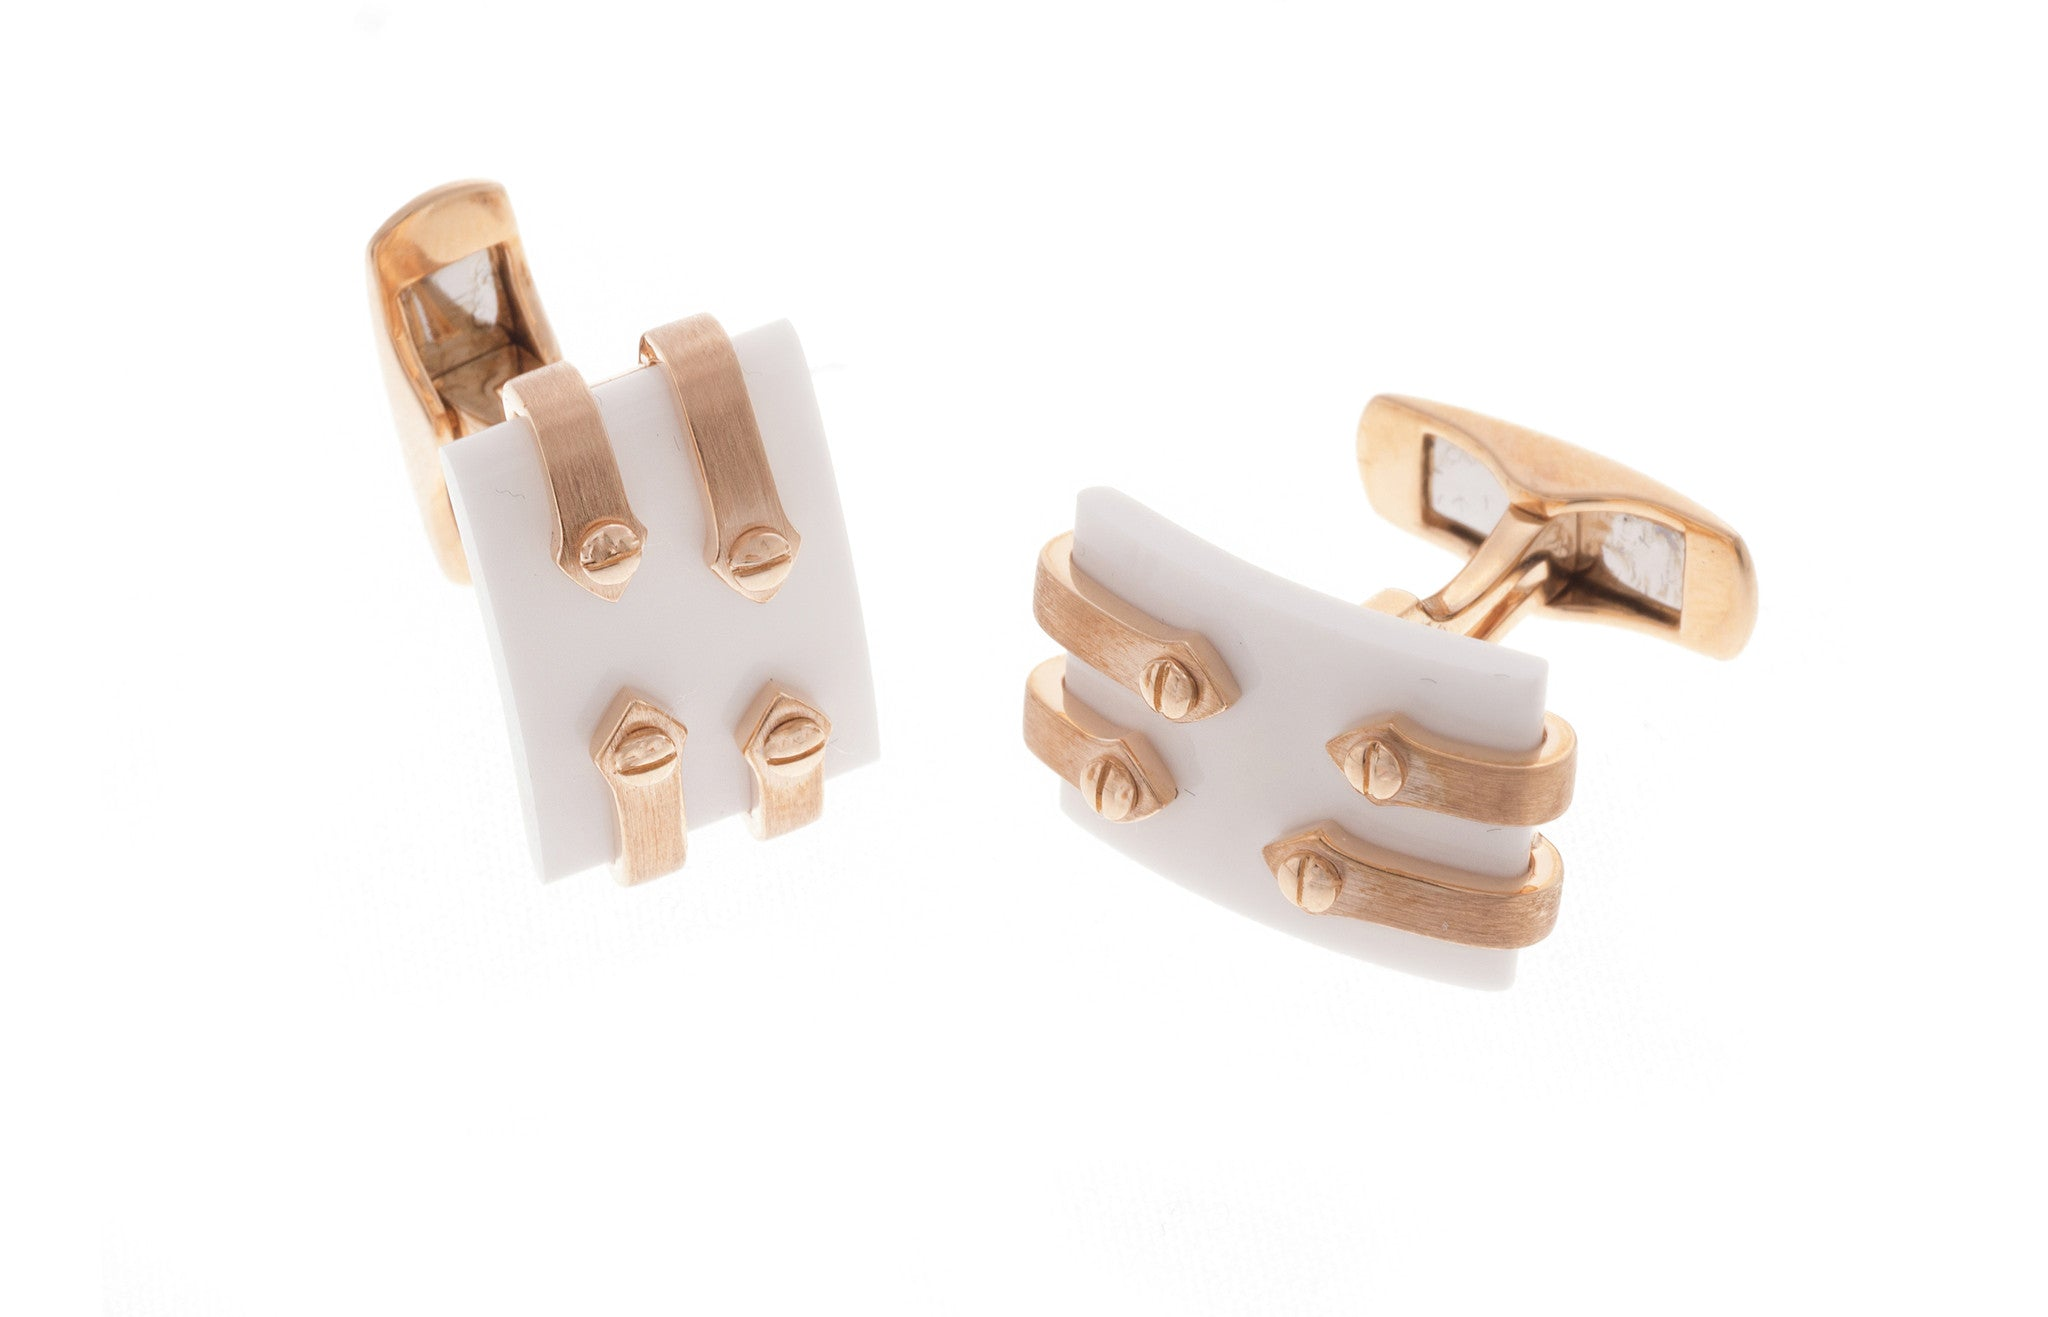 18ct Rose Gold Men's Cufflinks, Minar Jewellers - 5